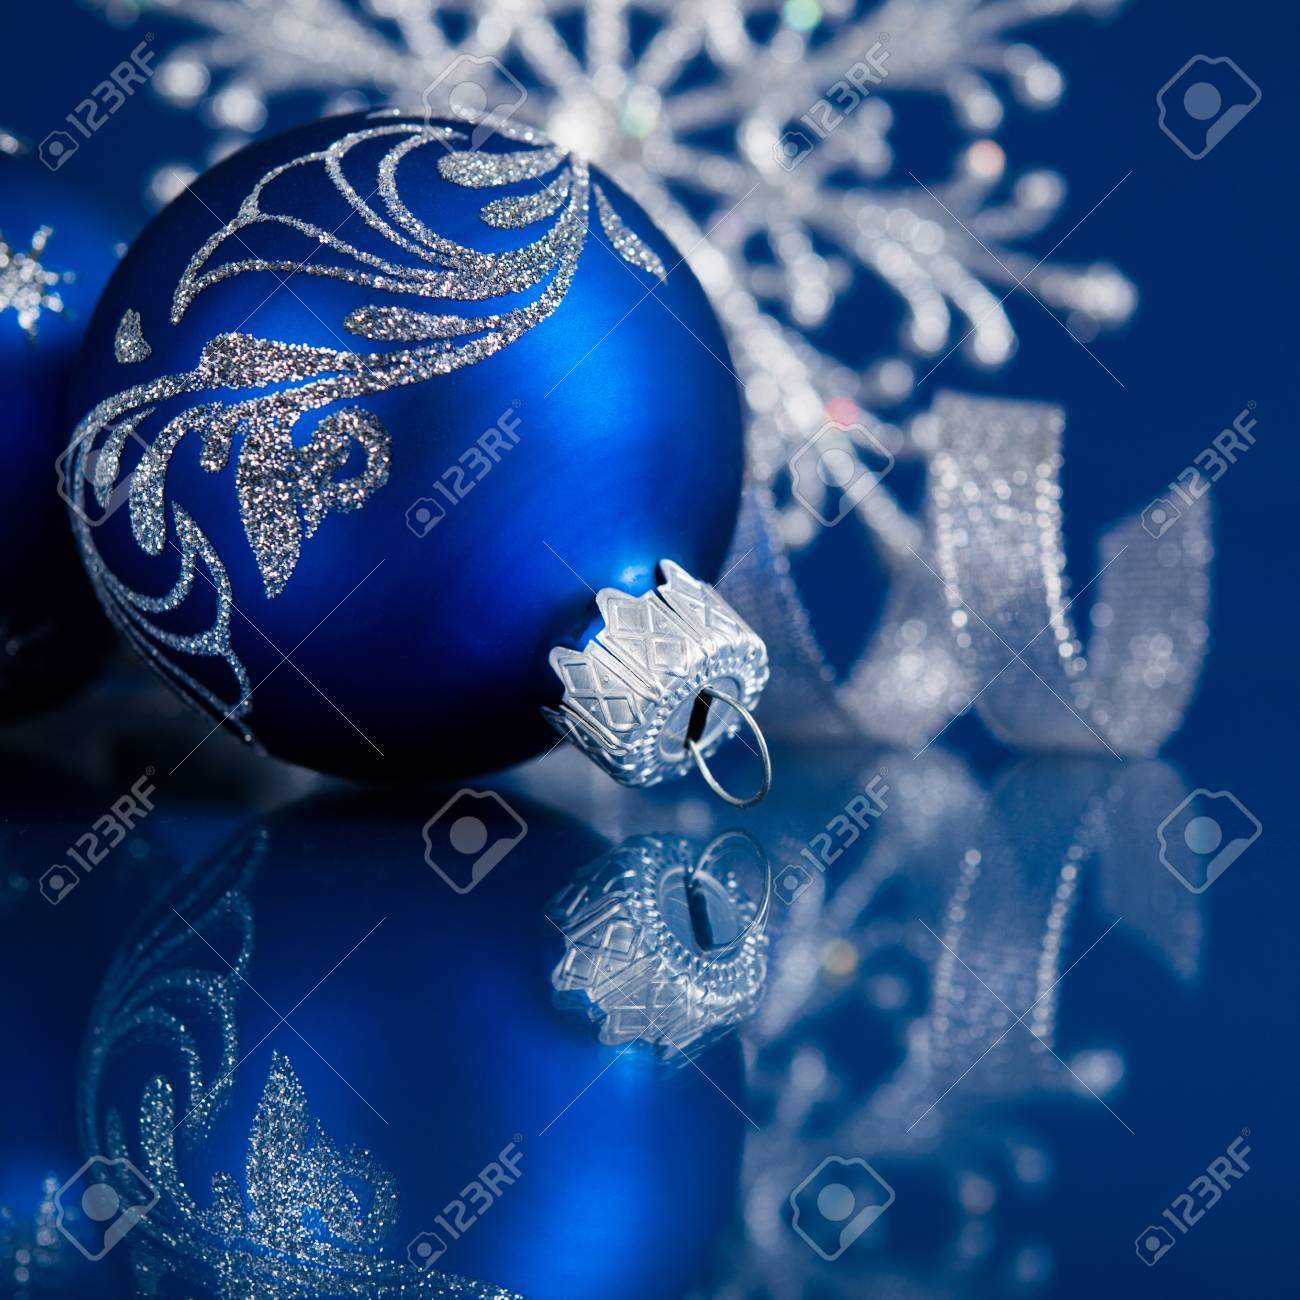 Blue And Silver Christmas Ornaments On Dark Blue Xmas Background Stock Photo Picture And Royalty Free Image Image 32790782